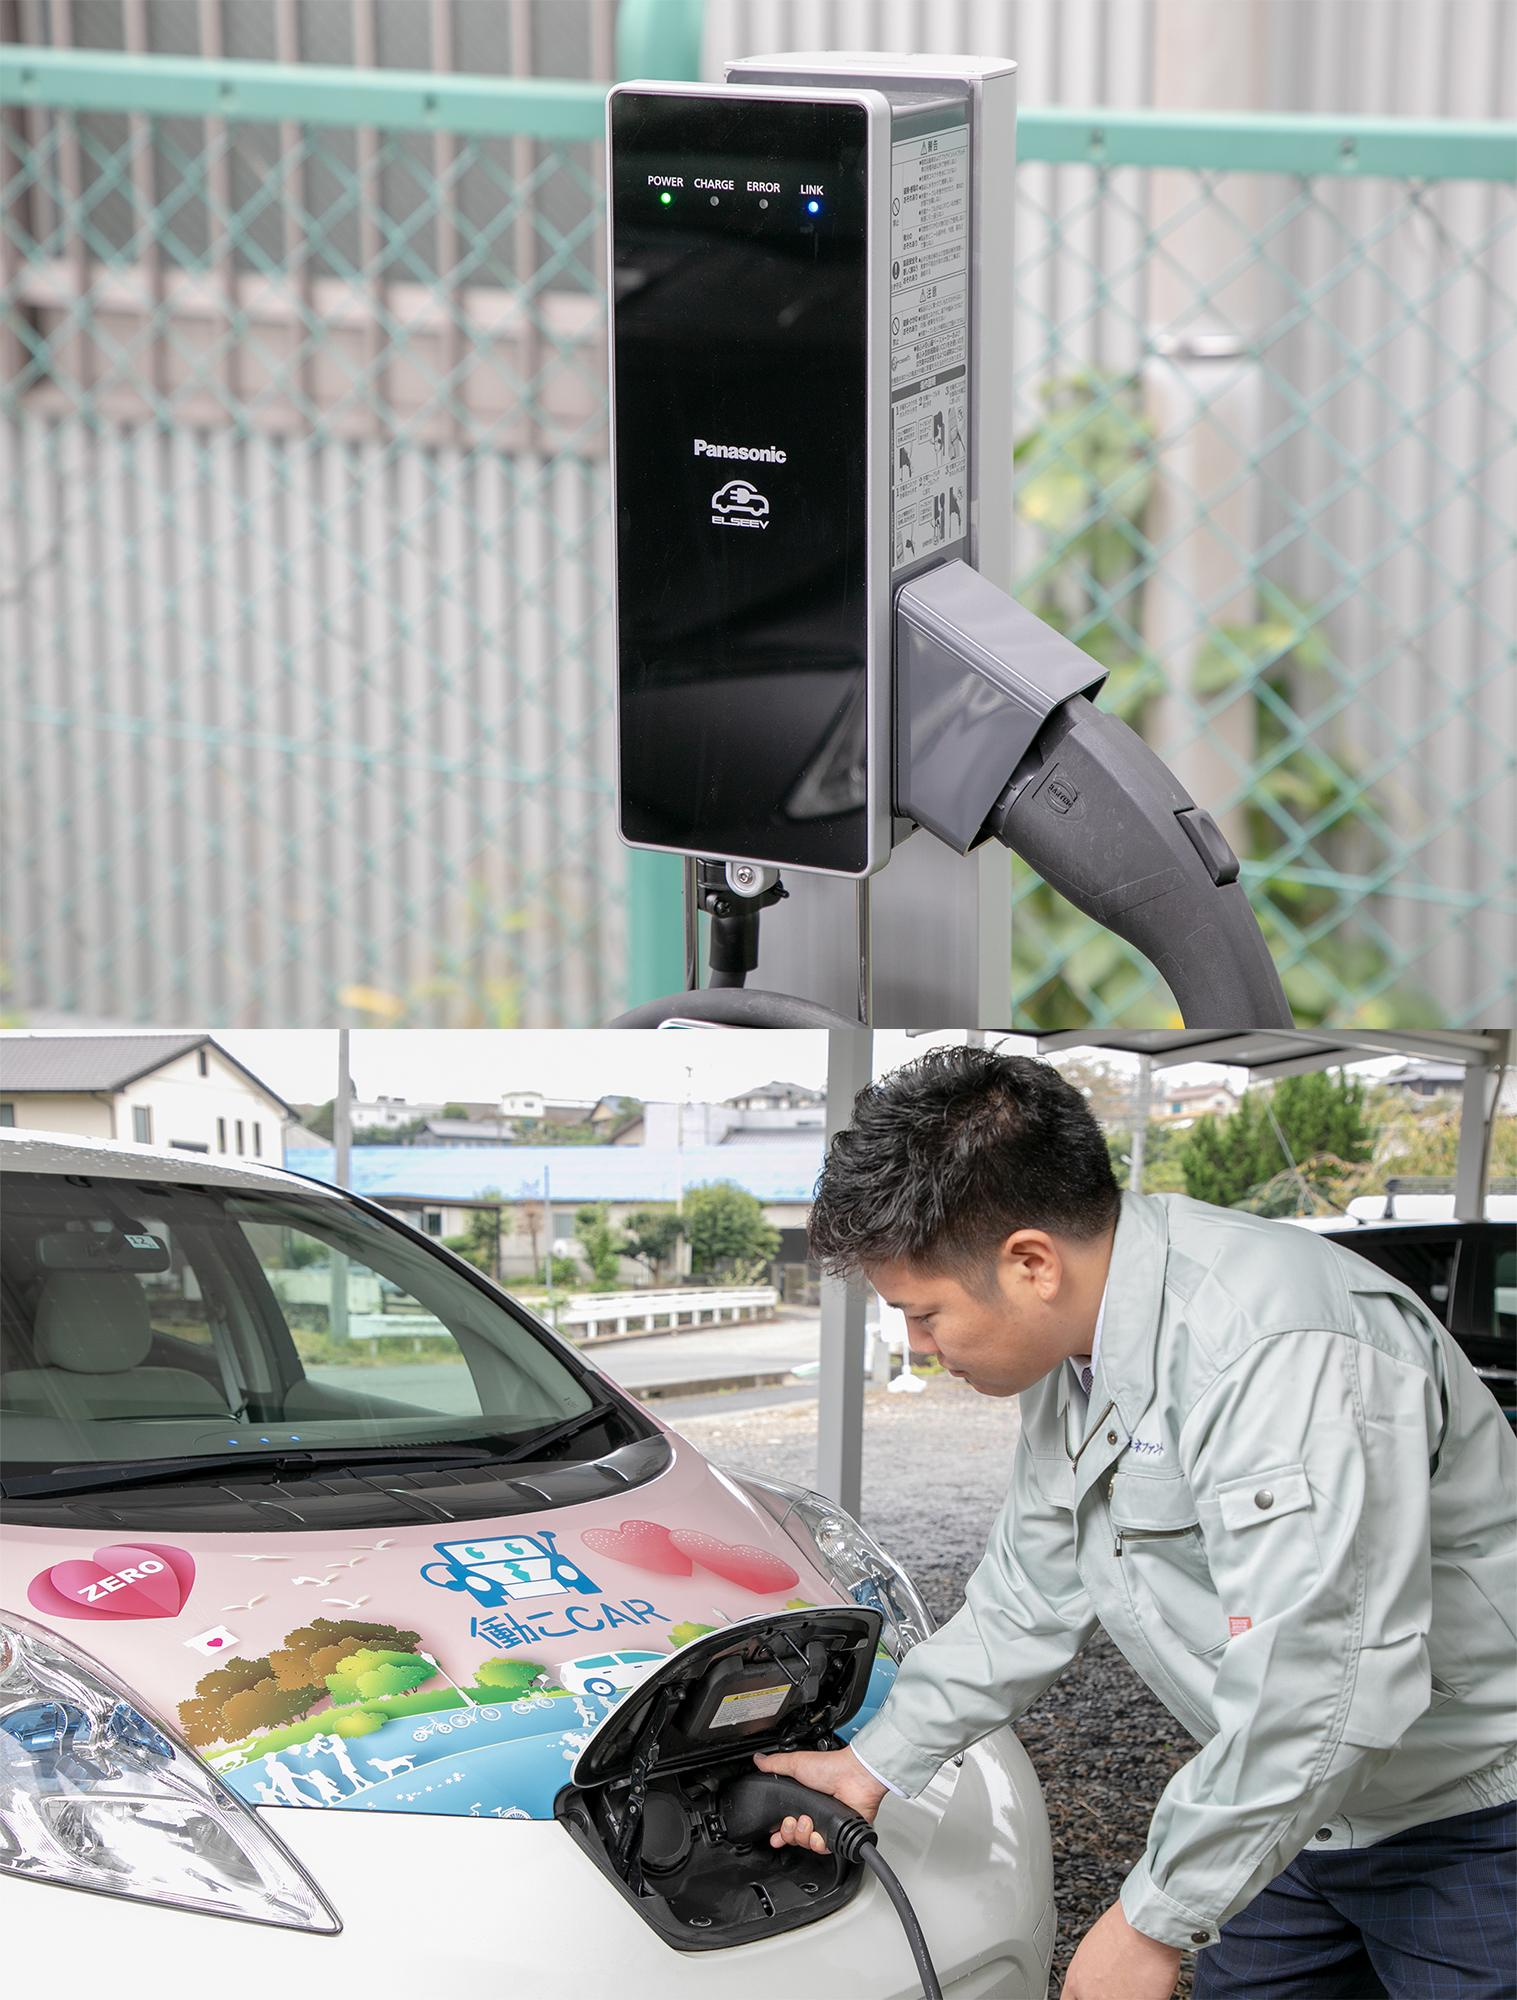 Photo: Surplus electric power from the solar power system is efficiently used to charge EVs.